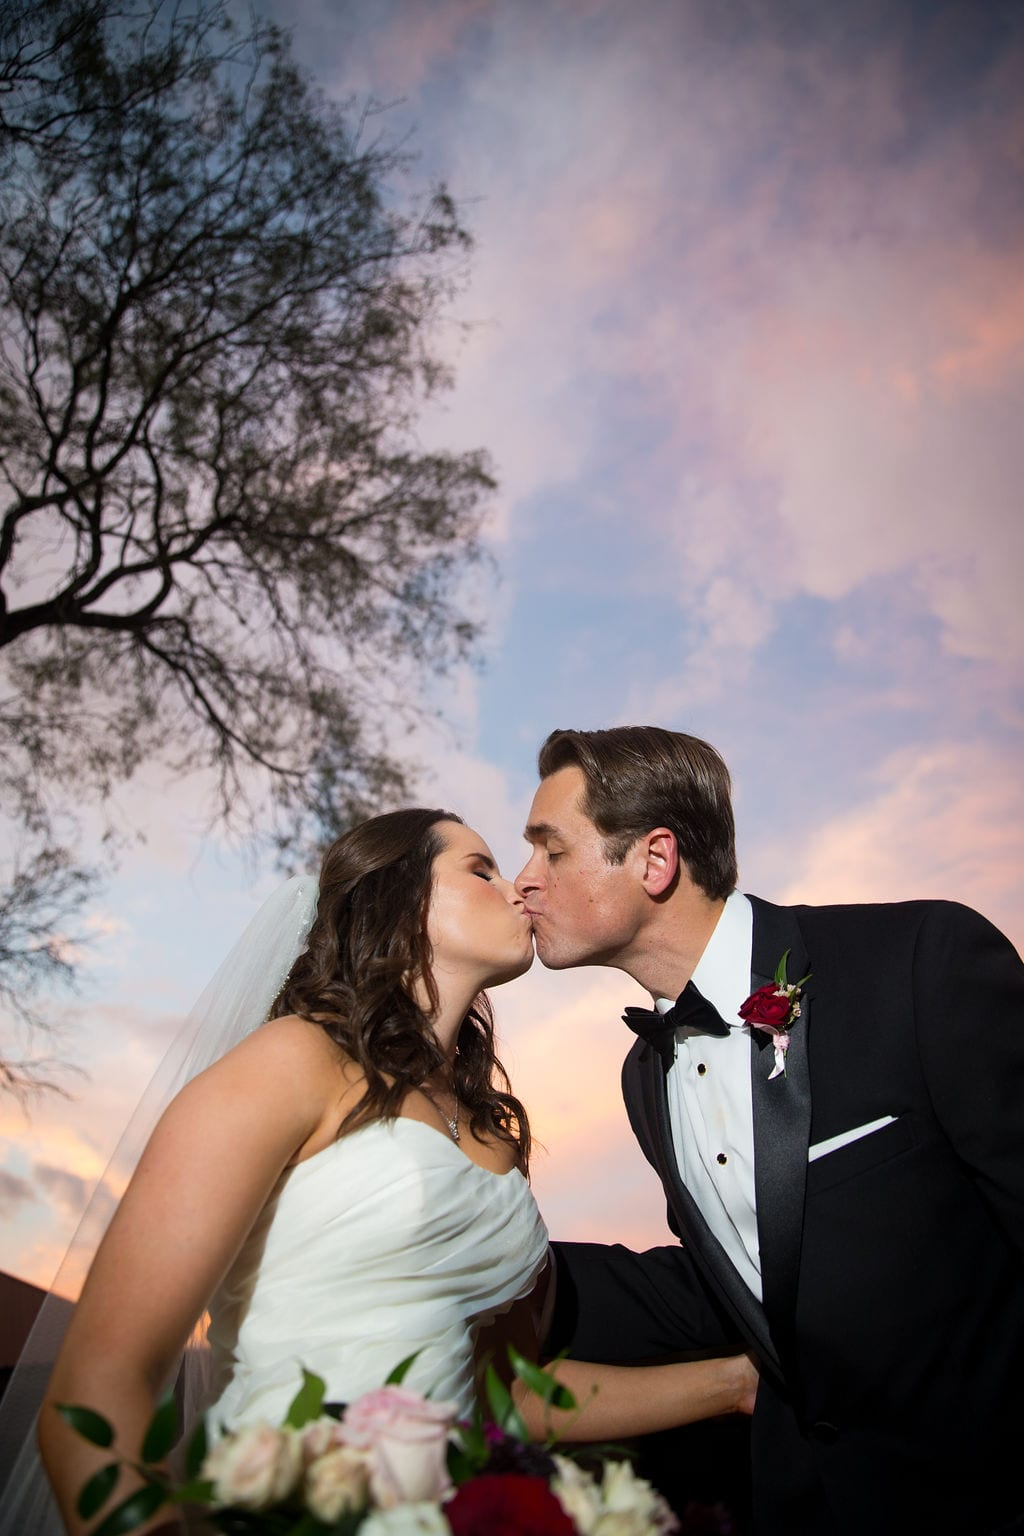 Ashley and Josh's wedding sunset kiss